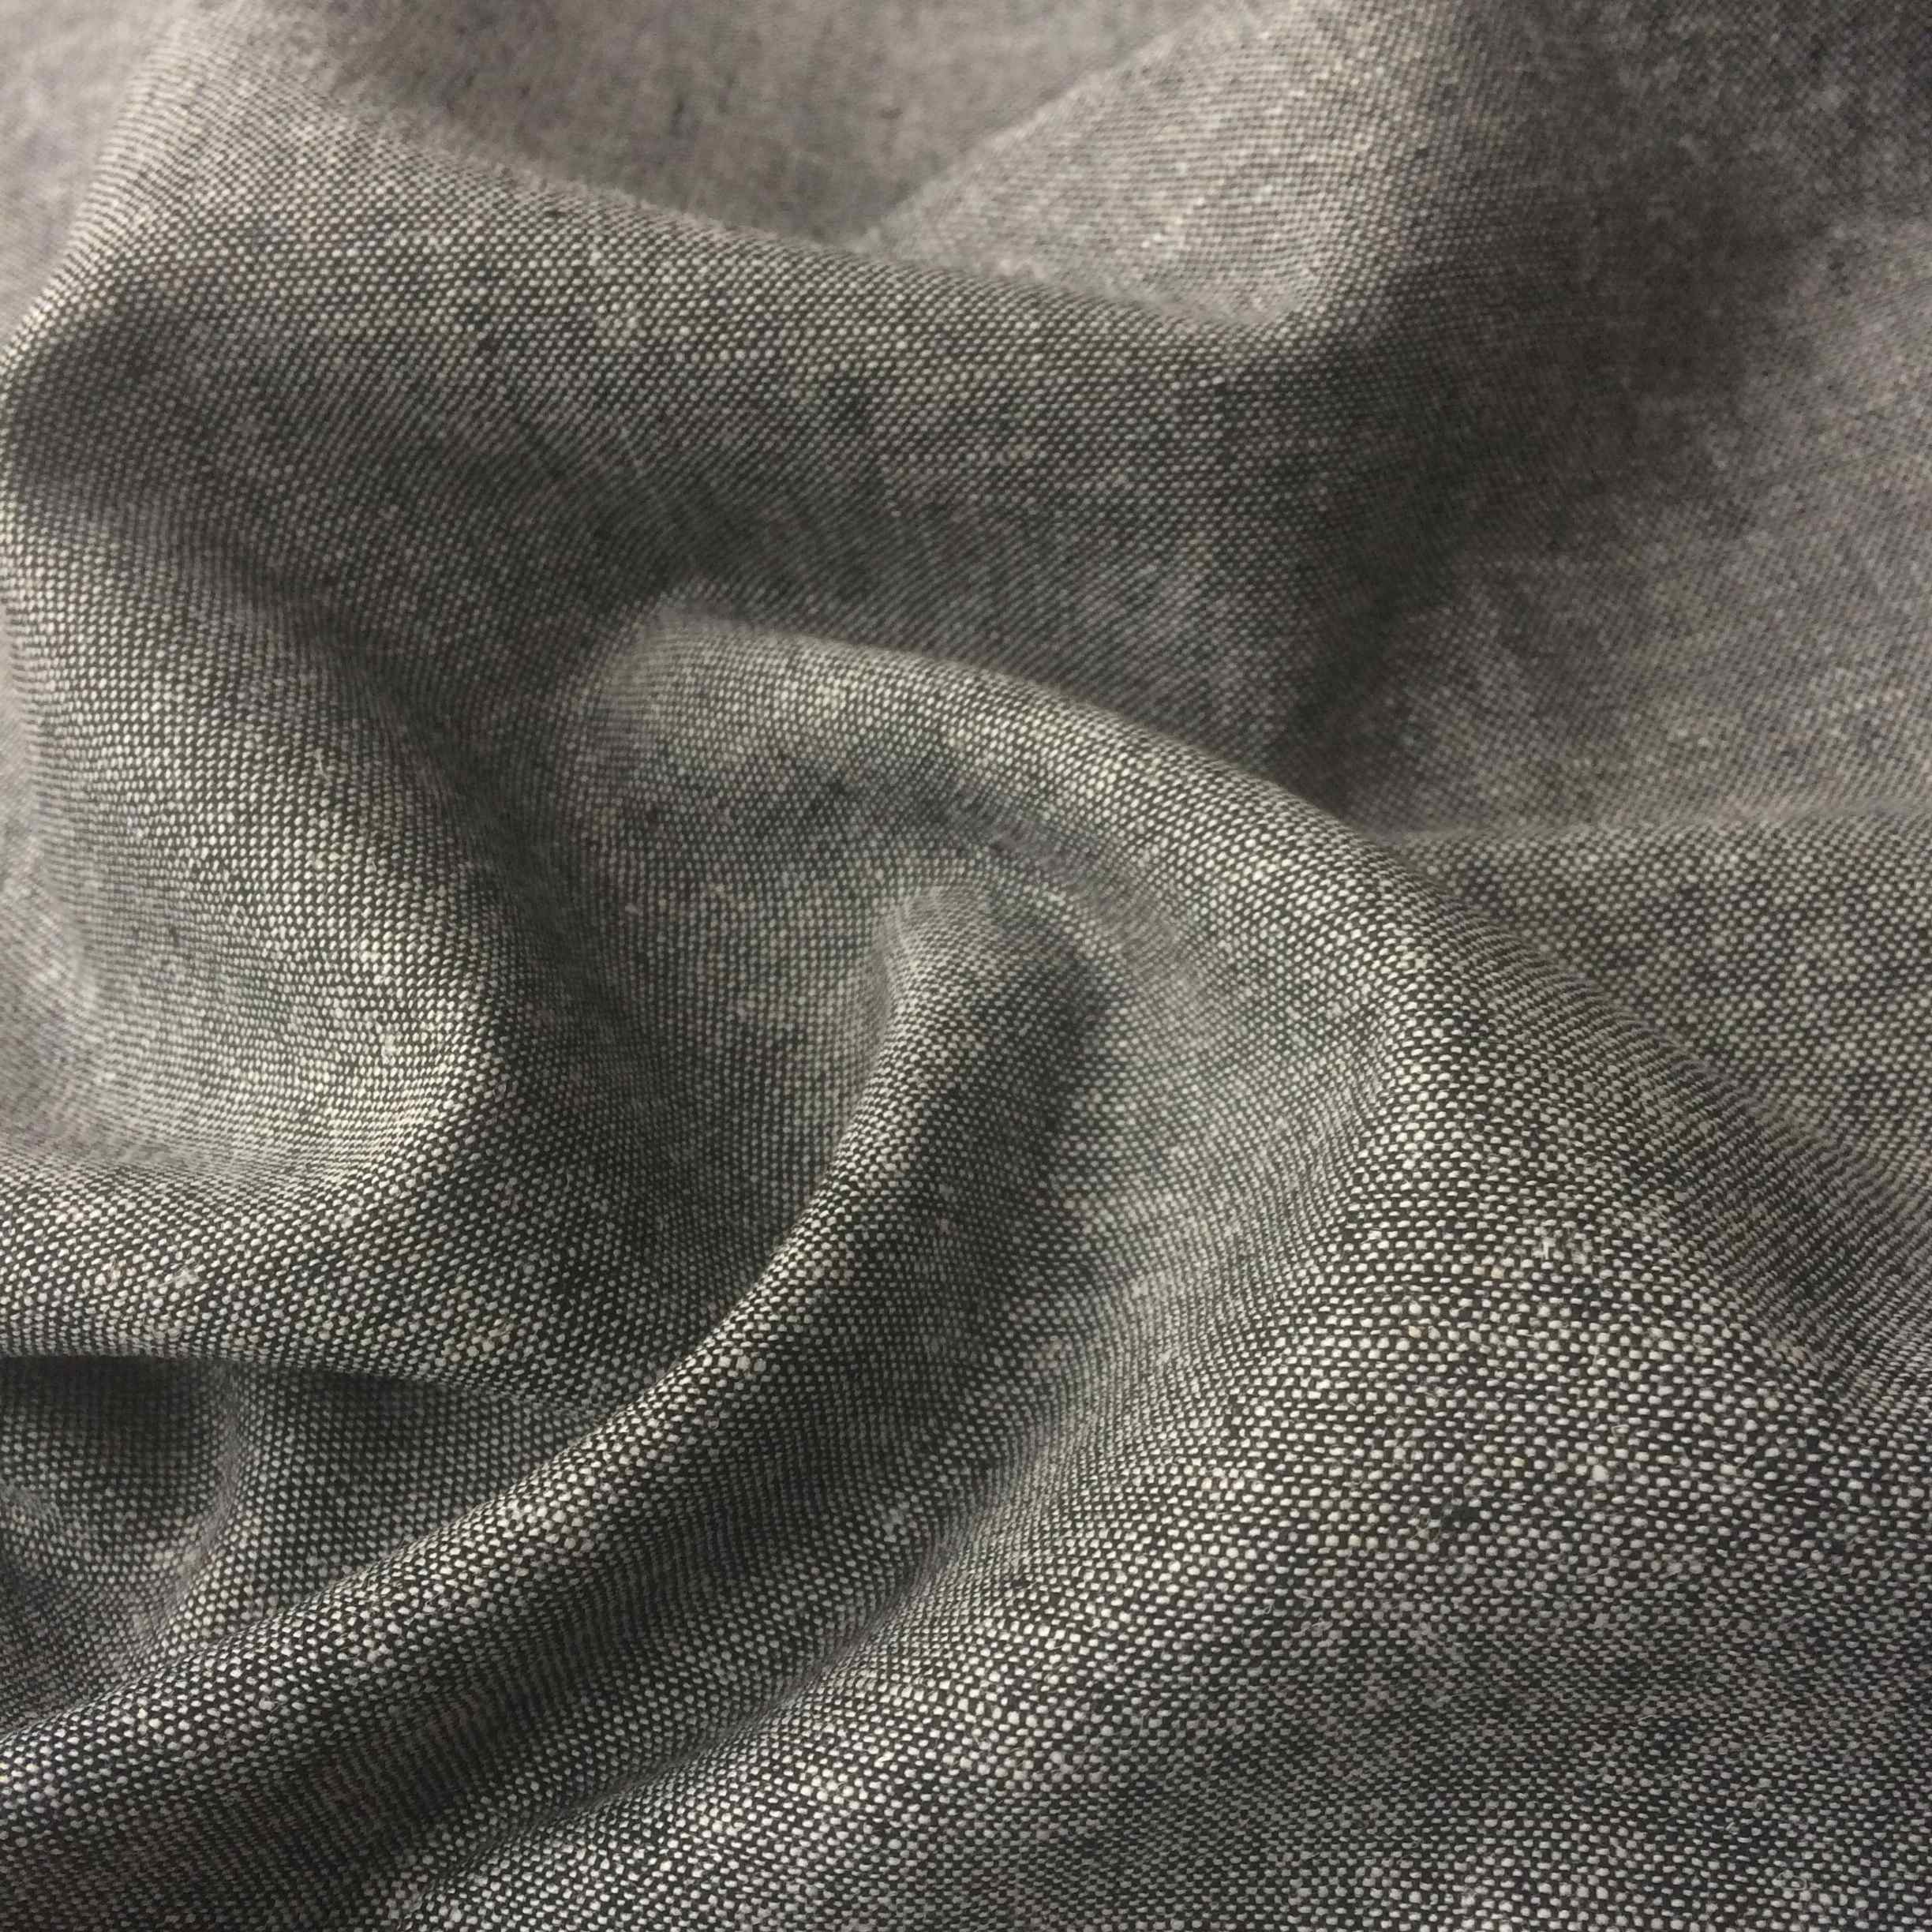 Robert Kaufman yarn Dyed Essex Linen Black